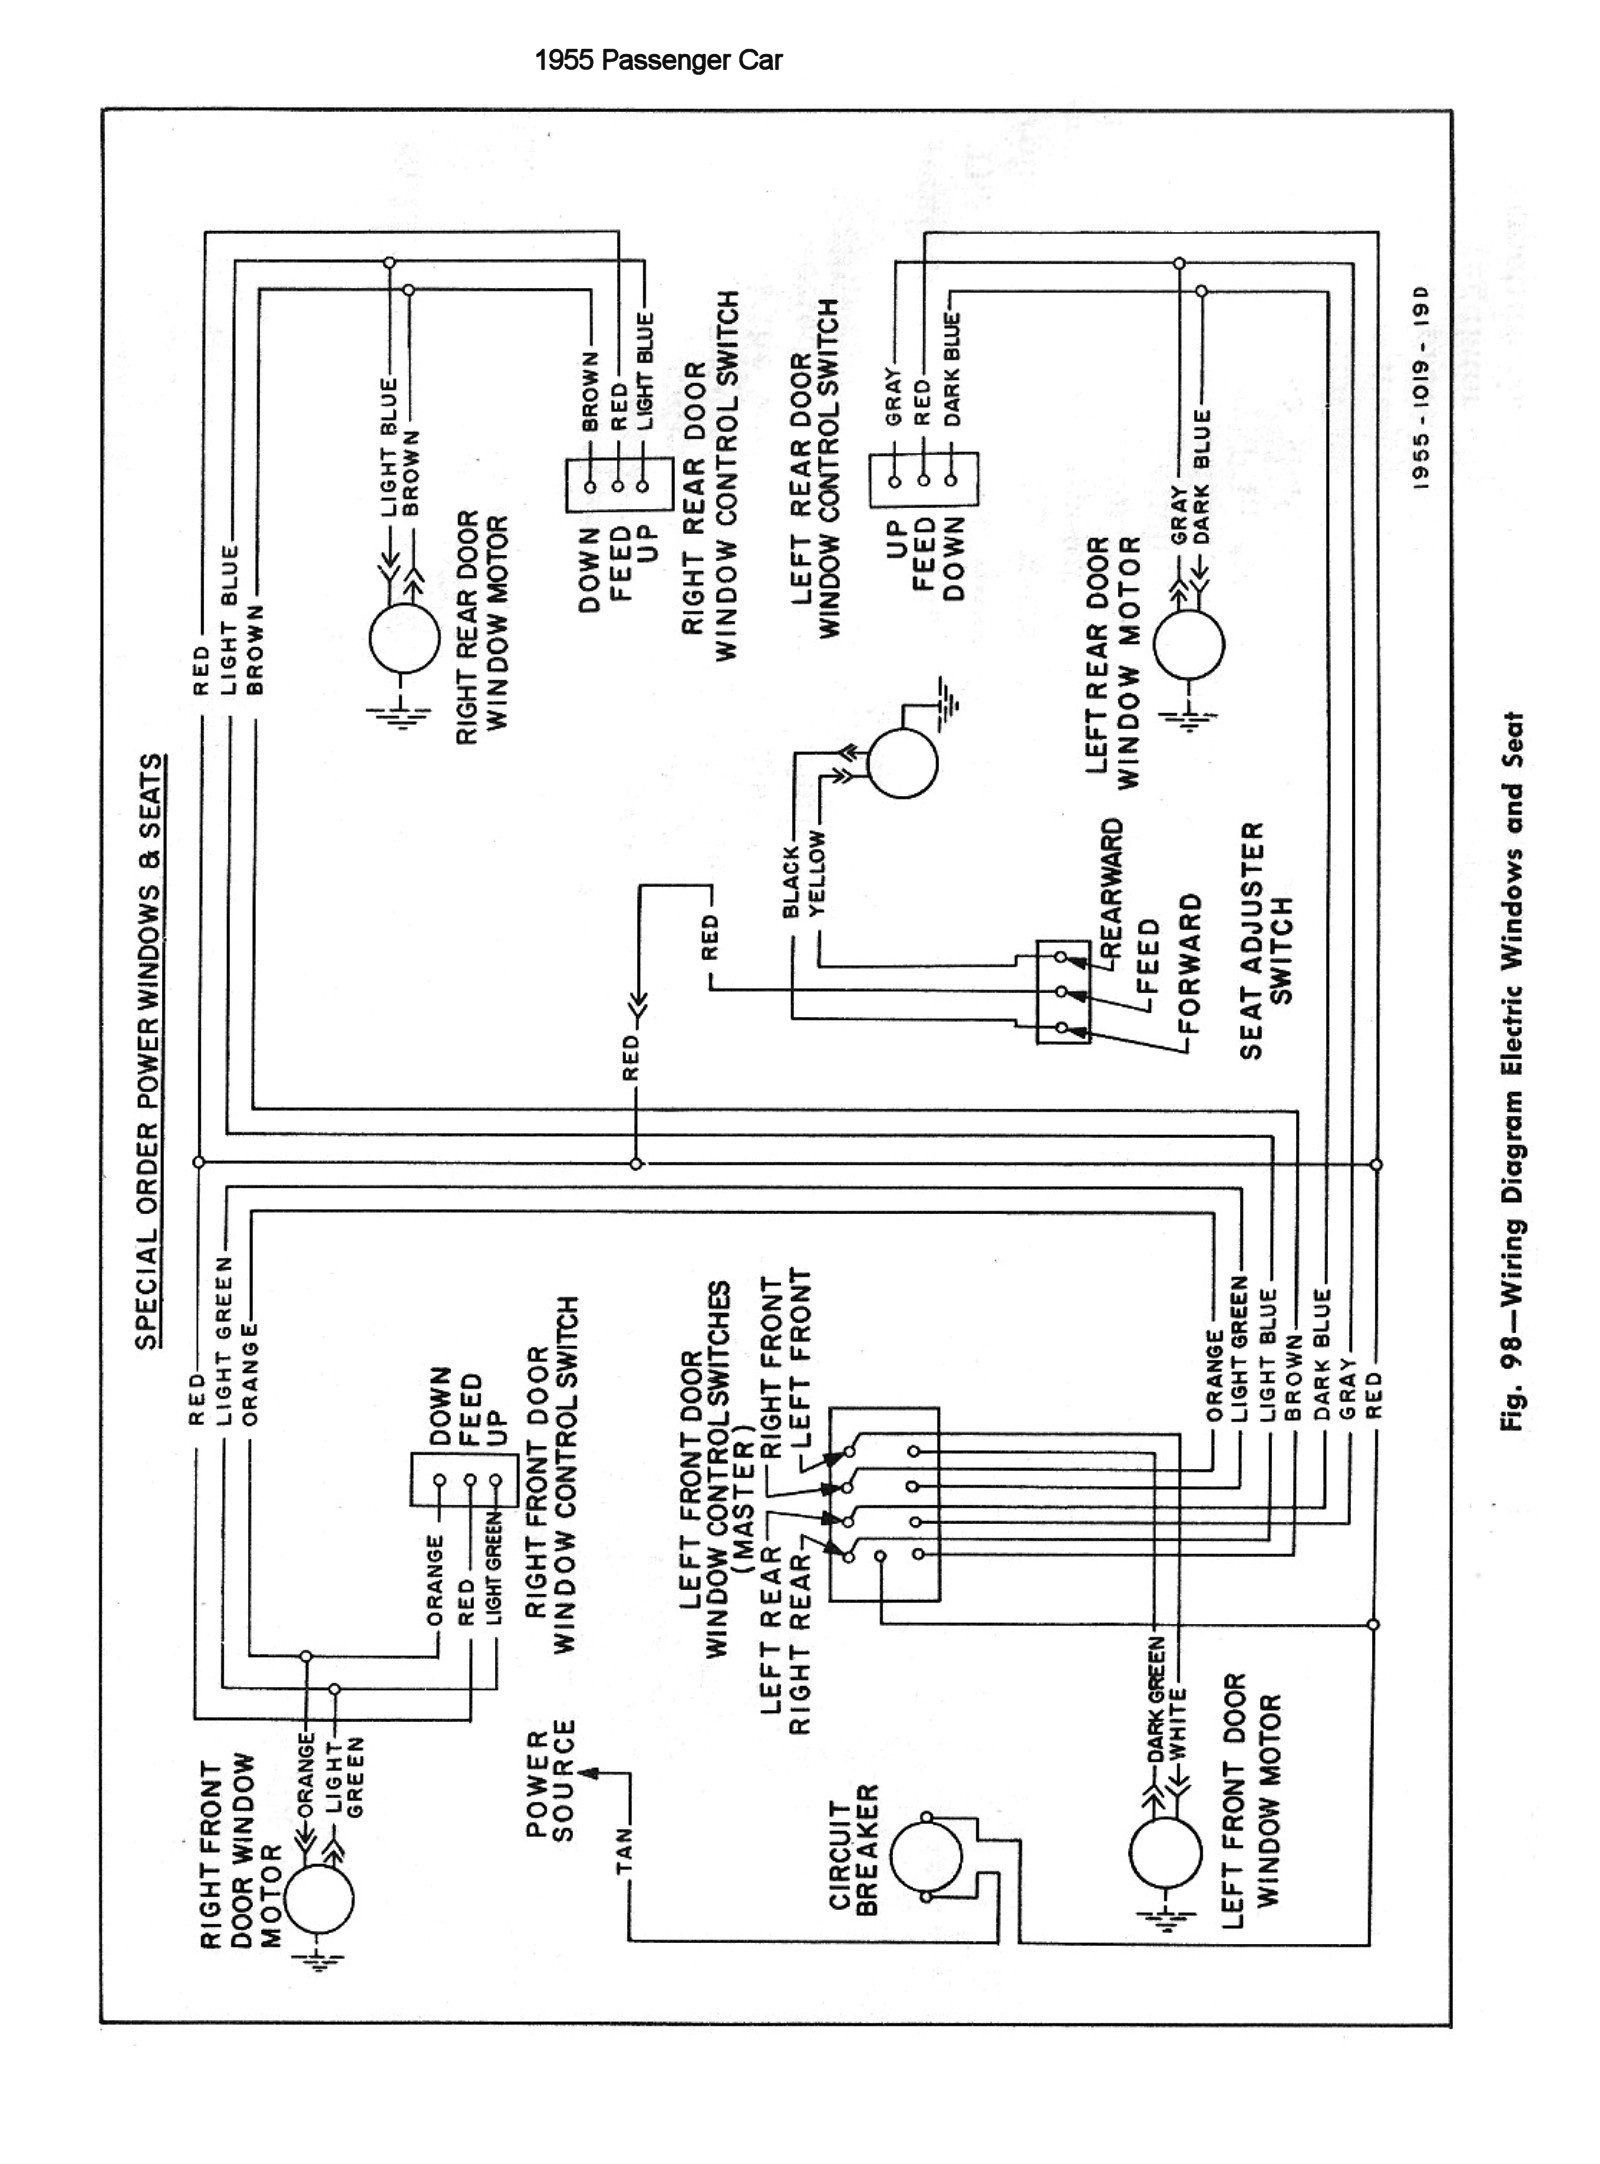 blinker wiring diagram electrical schematic wiring diagram turn signal switch wiring vw bug blinker switch wiring [ 1600 x 2164 Pixel ]